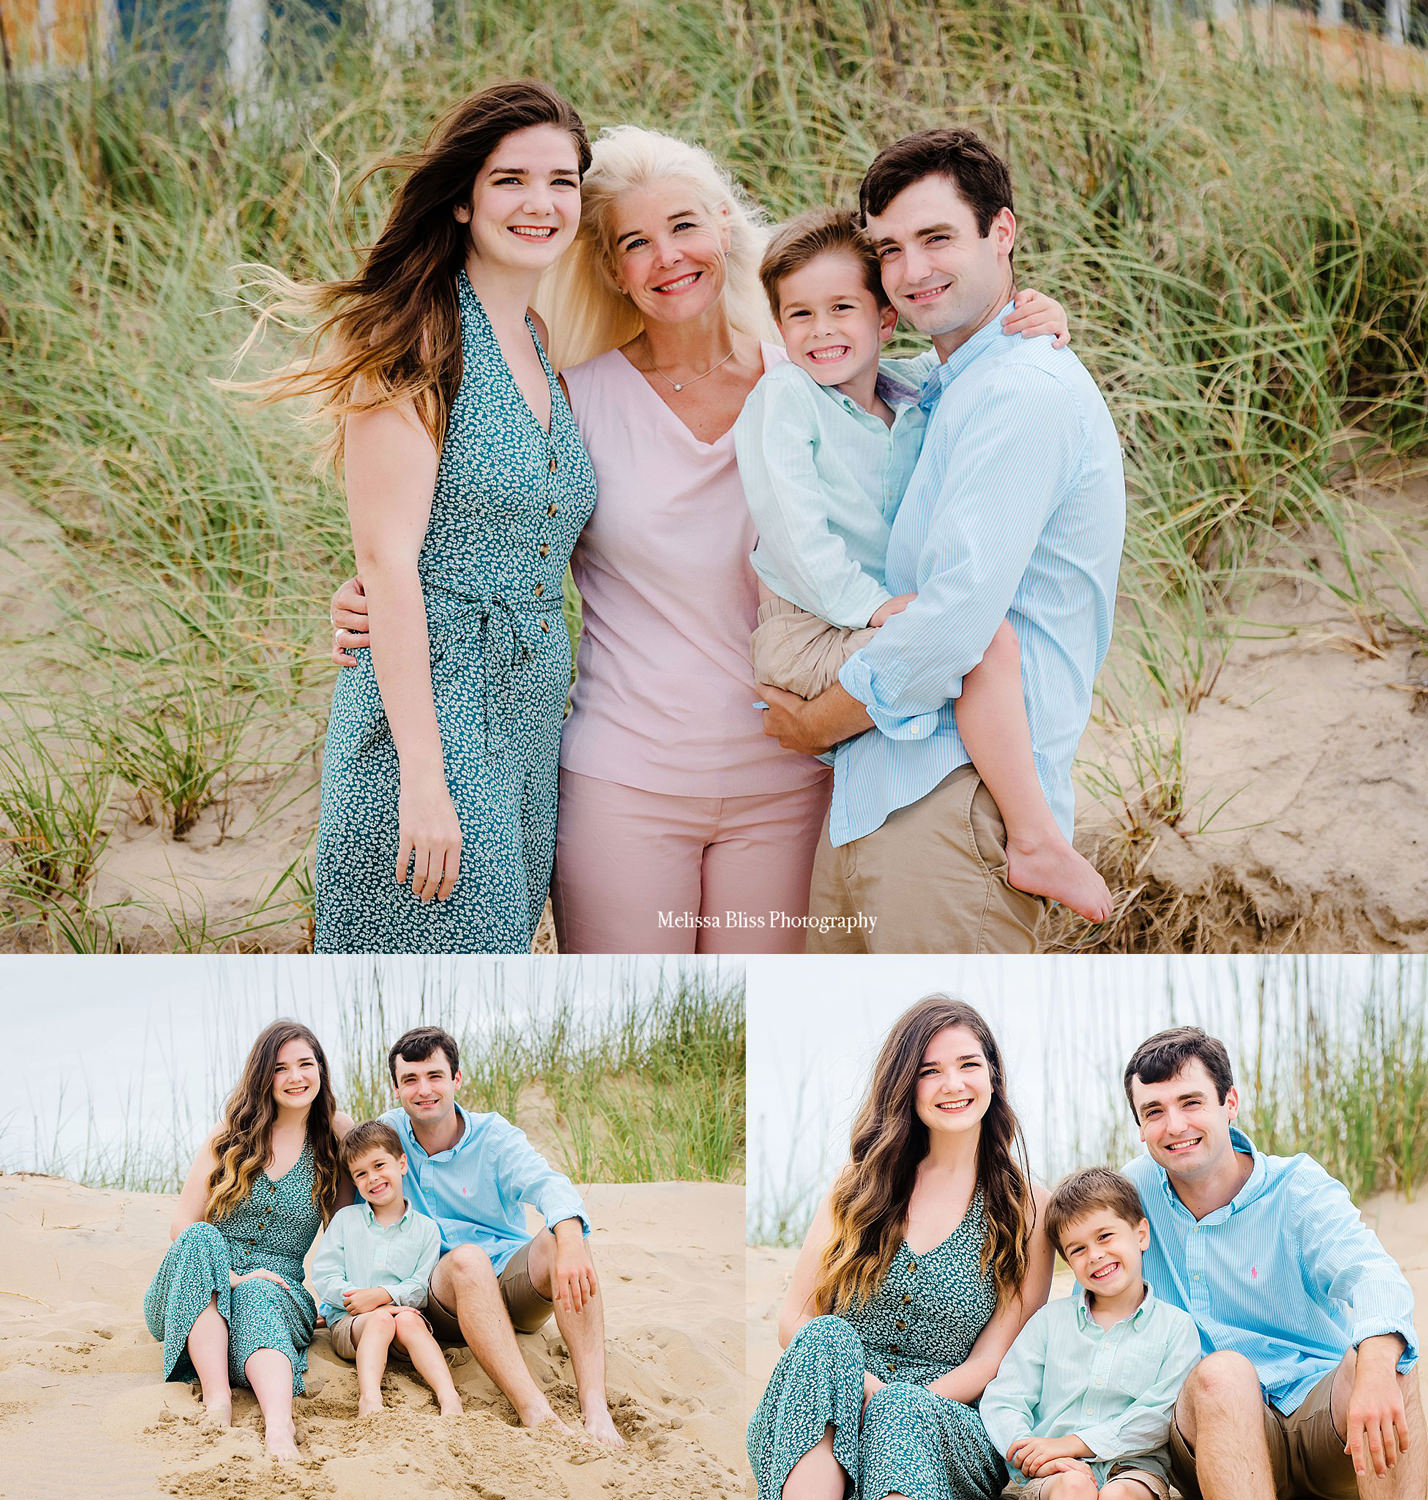 family-of-four-beach-pictures-melissa-bliss-photography-sandbridge-beach.jpg